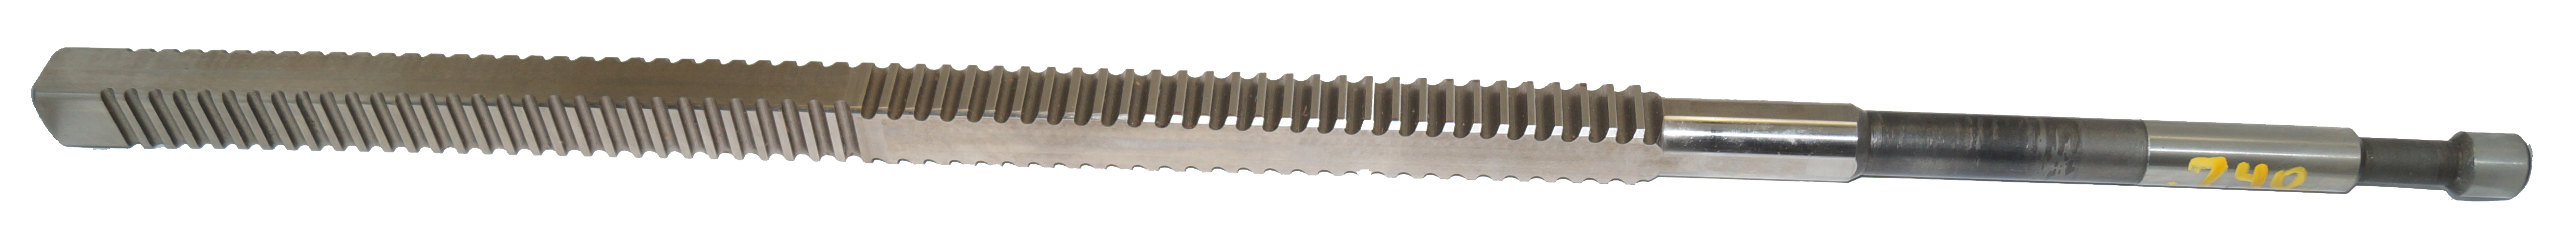 Square Keyway Broach Cutter, .740 Square, .625 Shank, 24""